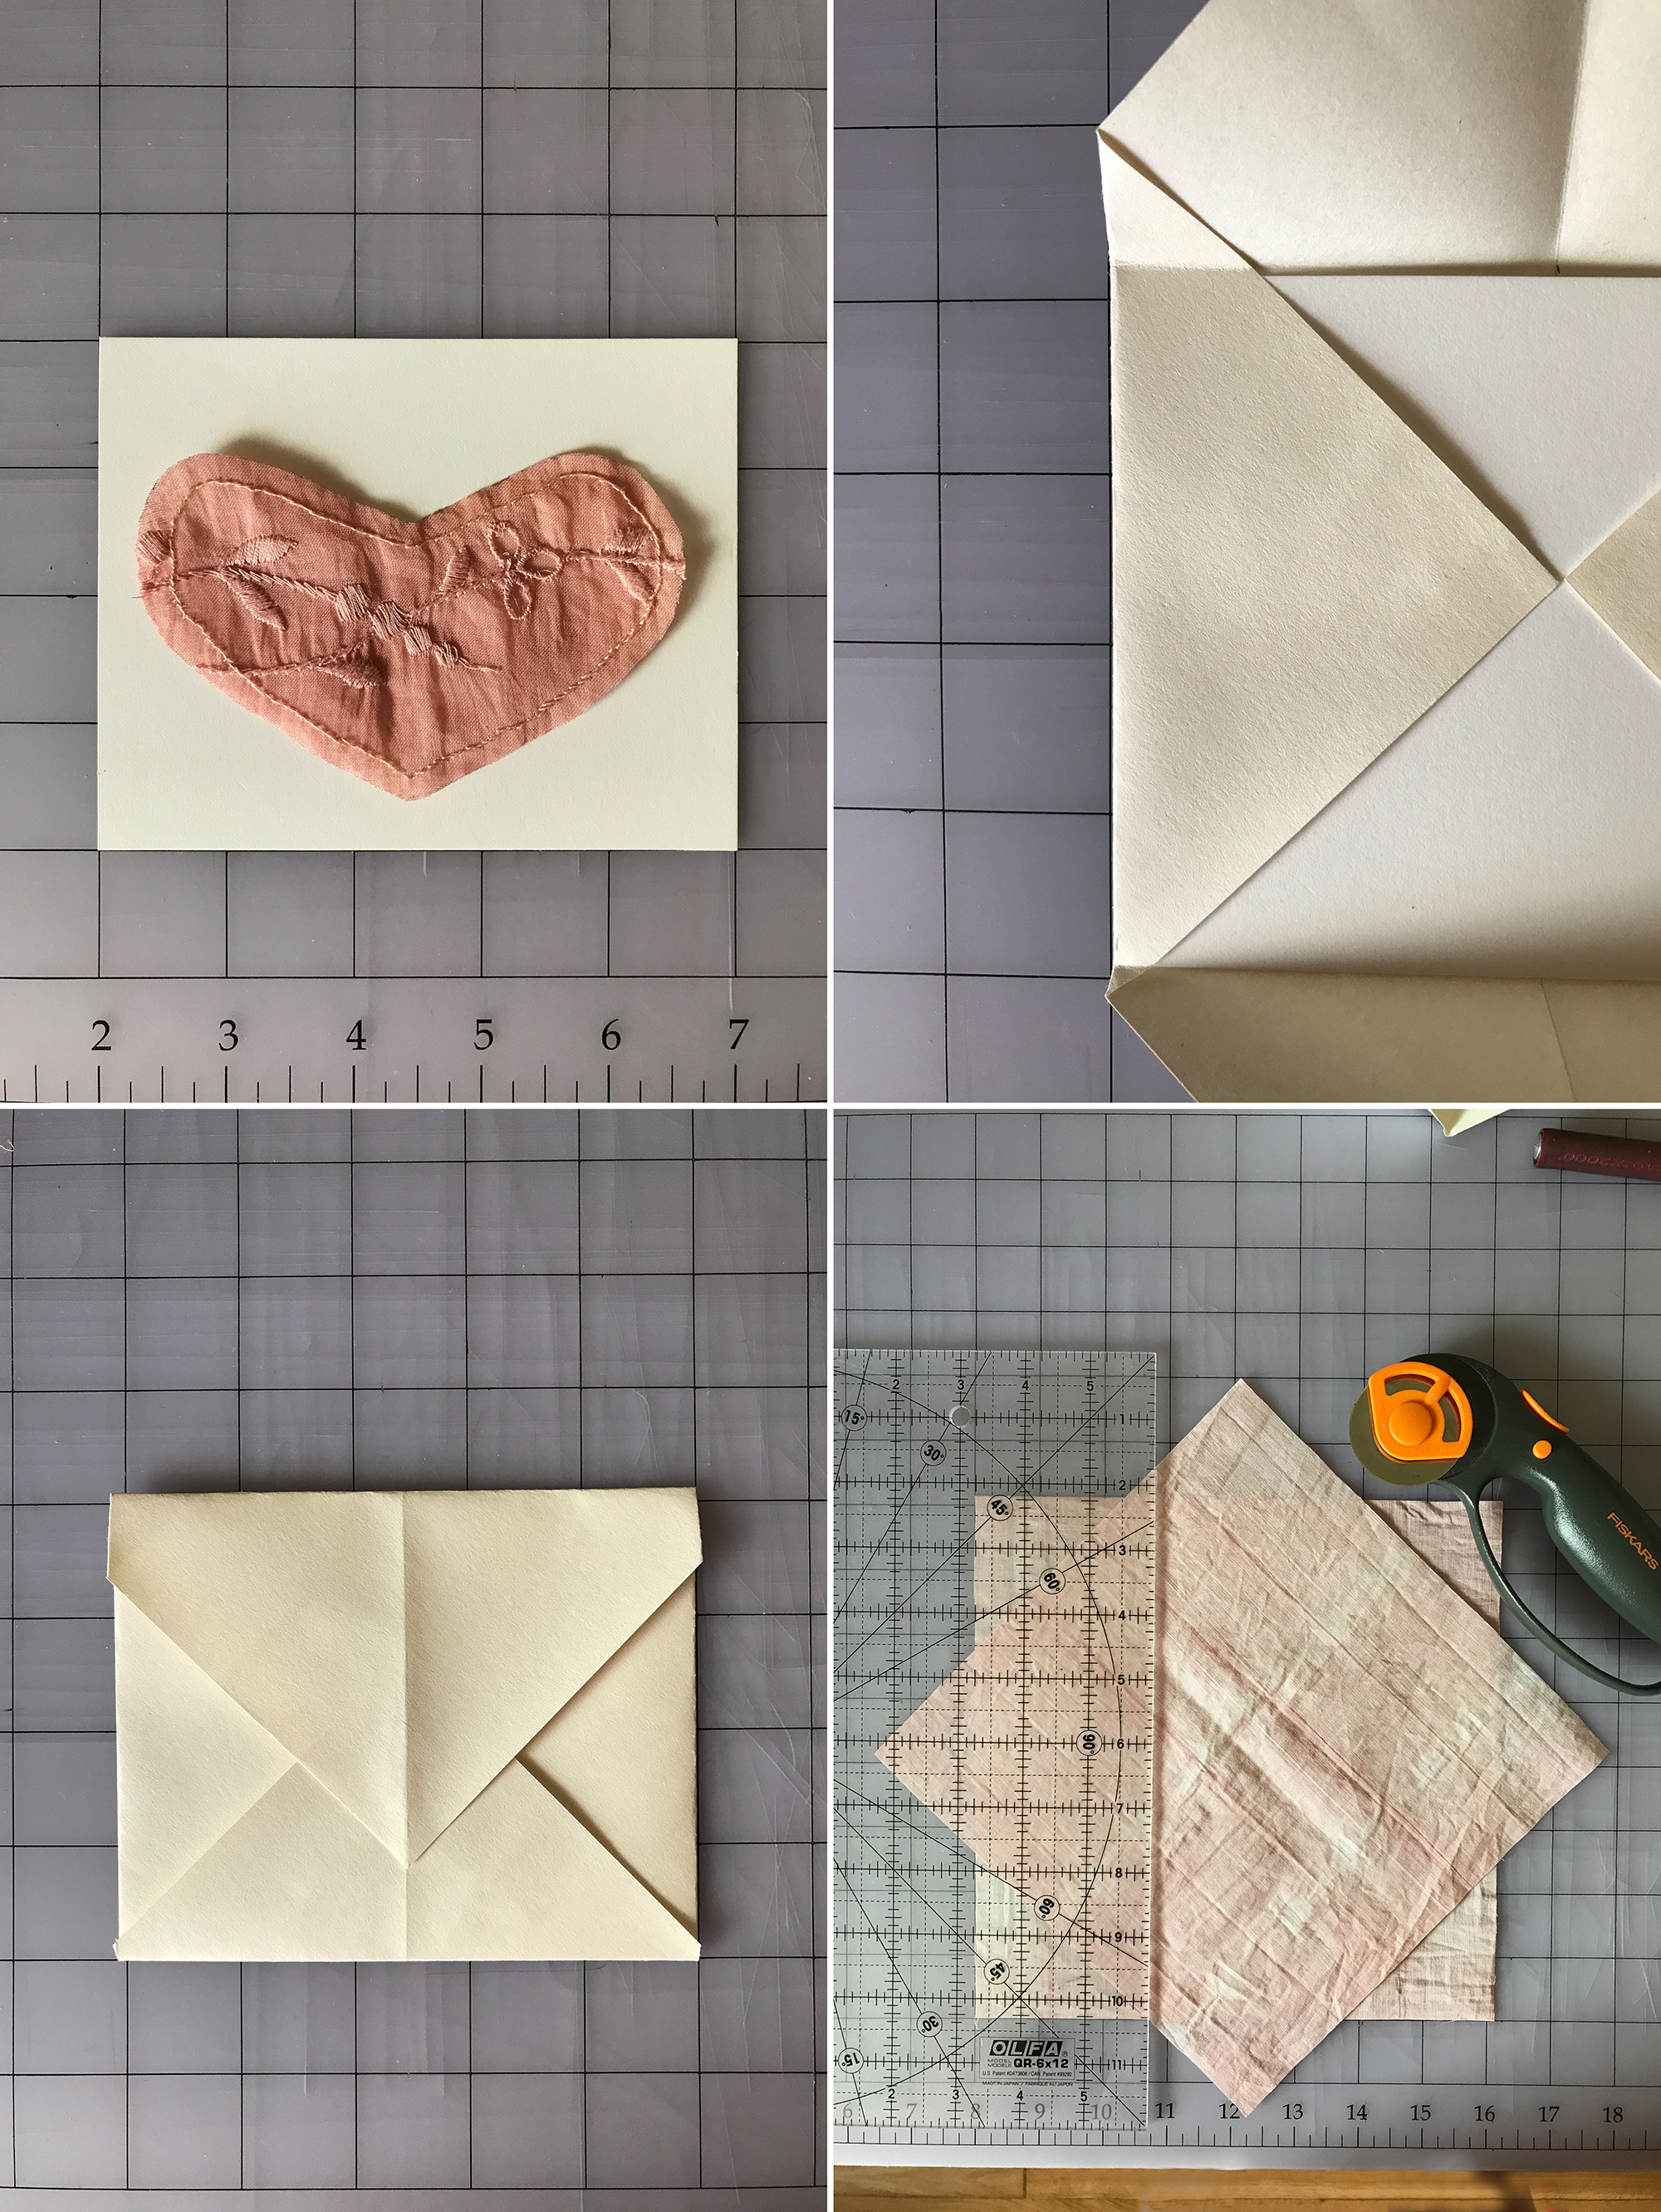 """5. Cut a piece of cardstock to a 4"""" x 5"""" (10cm x 13cm) rectangle and verify your heart fits comfortably within the space.  6. Cut a piece of scrap paper to 7-1/8"""" x 7-1/8"""" (18cm x 18cm). Set the paper at a 45˚ angle and set your cardstock just a little above center top-to-bottom and centered side-to-side. Use the 45˚ marking on your quilting ruler to verify you're lining things up squarely. Fold the corners in for the side flaps; they should just barely touch noses like an Eskimo kiss. Use your fingernail to score the side flaps where the top and bottom edges of the cardstock sit. You should have tiny triangles on the flaps at the bottom and larger triangles on the flaps at the top.  7. Crease the folds. You're now going to replicate the envelope shape in fabric. Keeping the paper version as a reference will be helpful when you go to fold and press your fabric.  8. Using a quilting ruler and rotary cutter, cut two pieces of cotton fabric to the same size as your pattern—7-1/8"""" x 7-1/8"""" (18cm x 18cm)."""